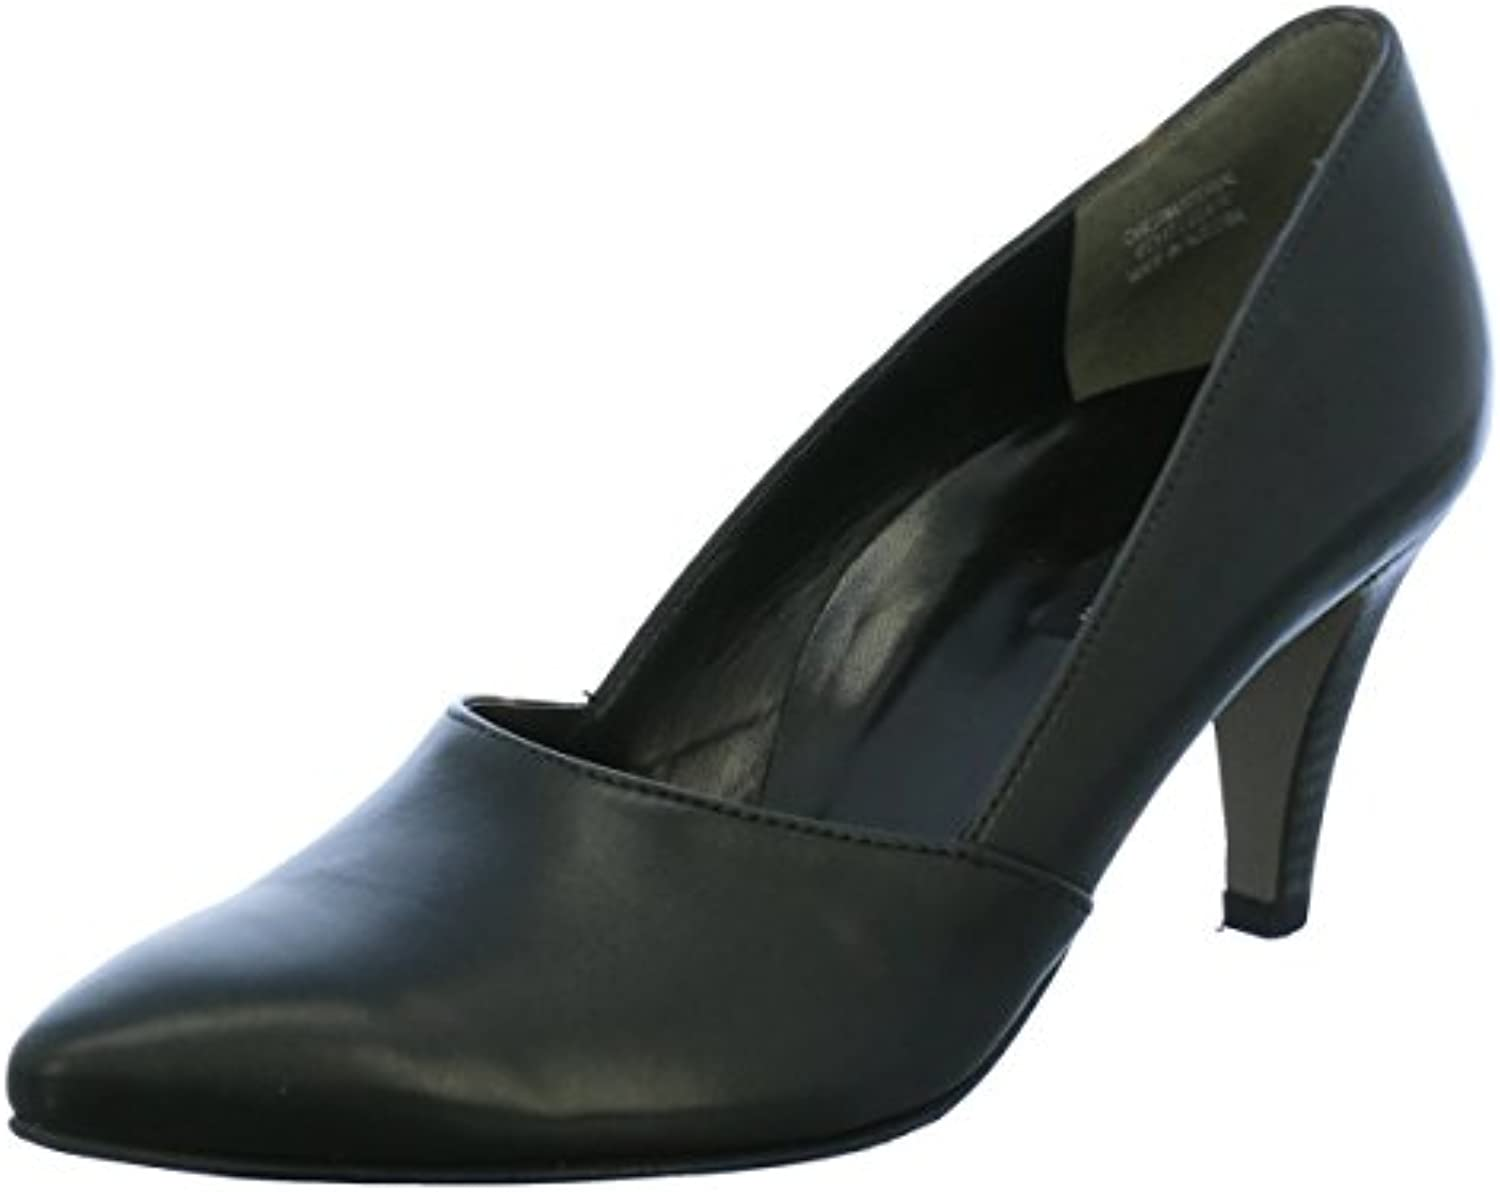 Paul Green Damen Pumps 3367006 3367006 Schwarz 50276